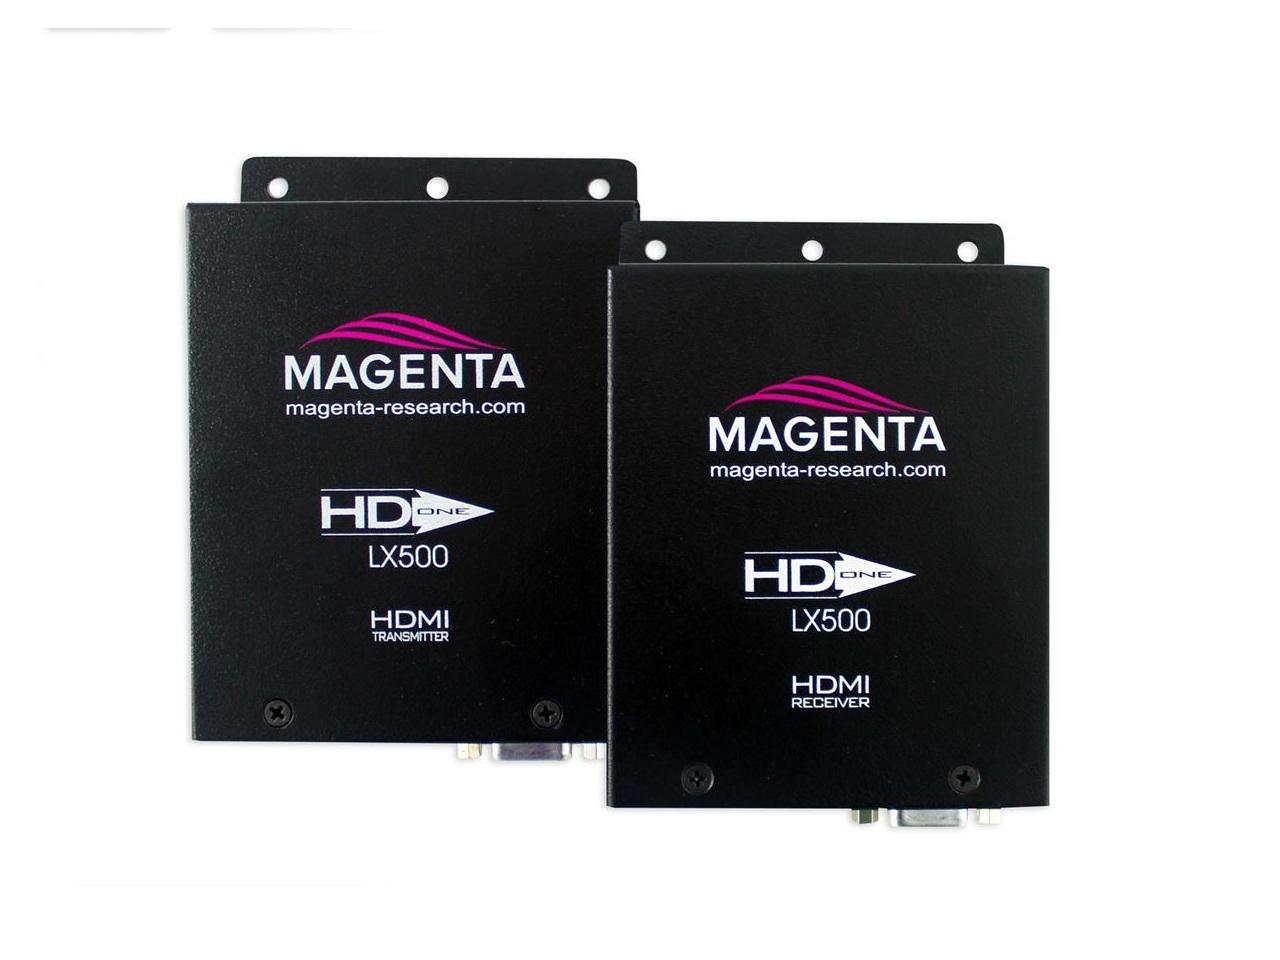 2211113-02 HD-One LX500 HDMI UTP Extender (Transmitter/Receiver) Kit 500 ft with IR/RS-232 by Magenta Research